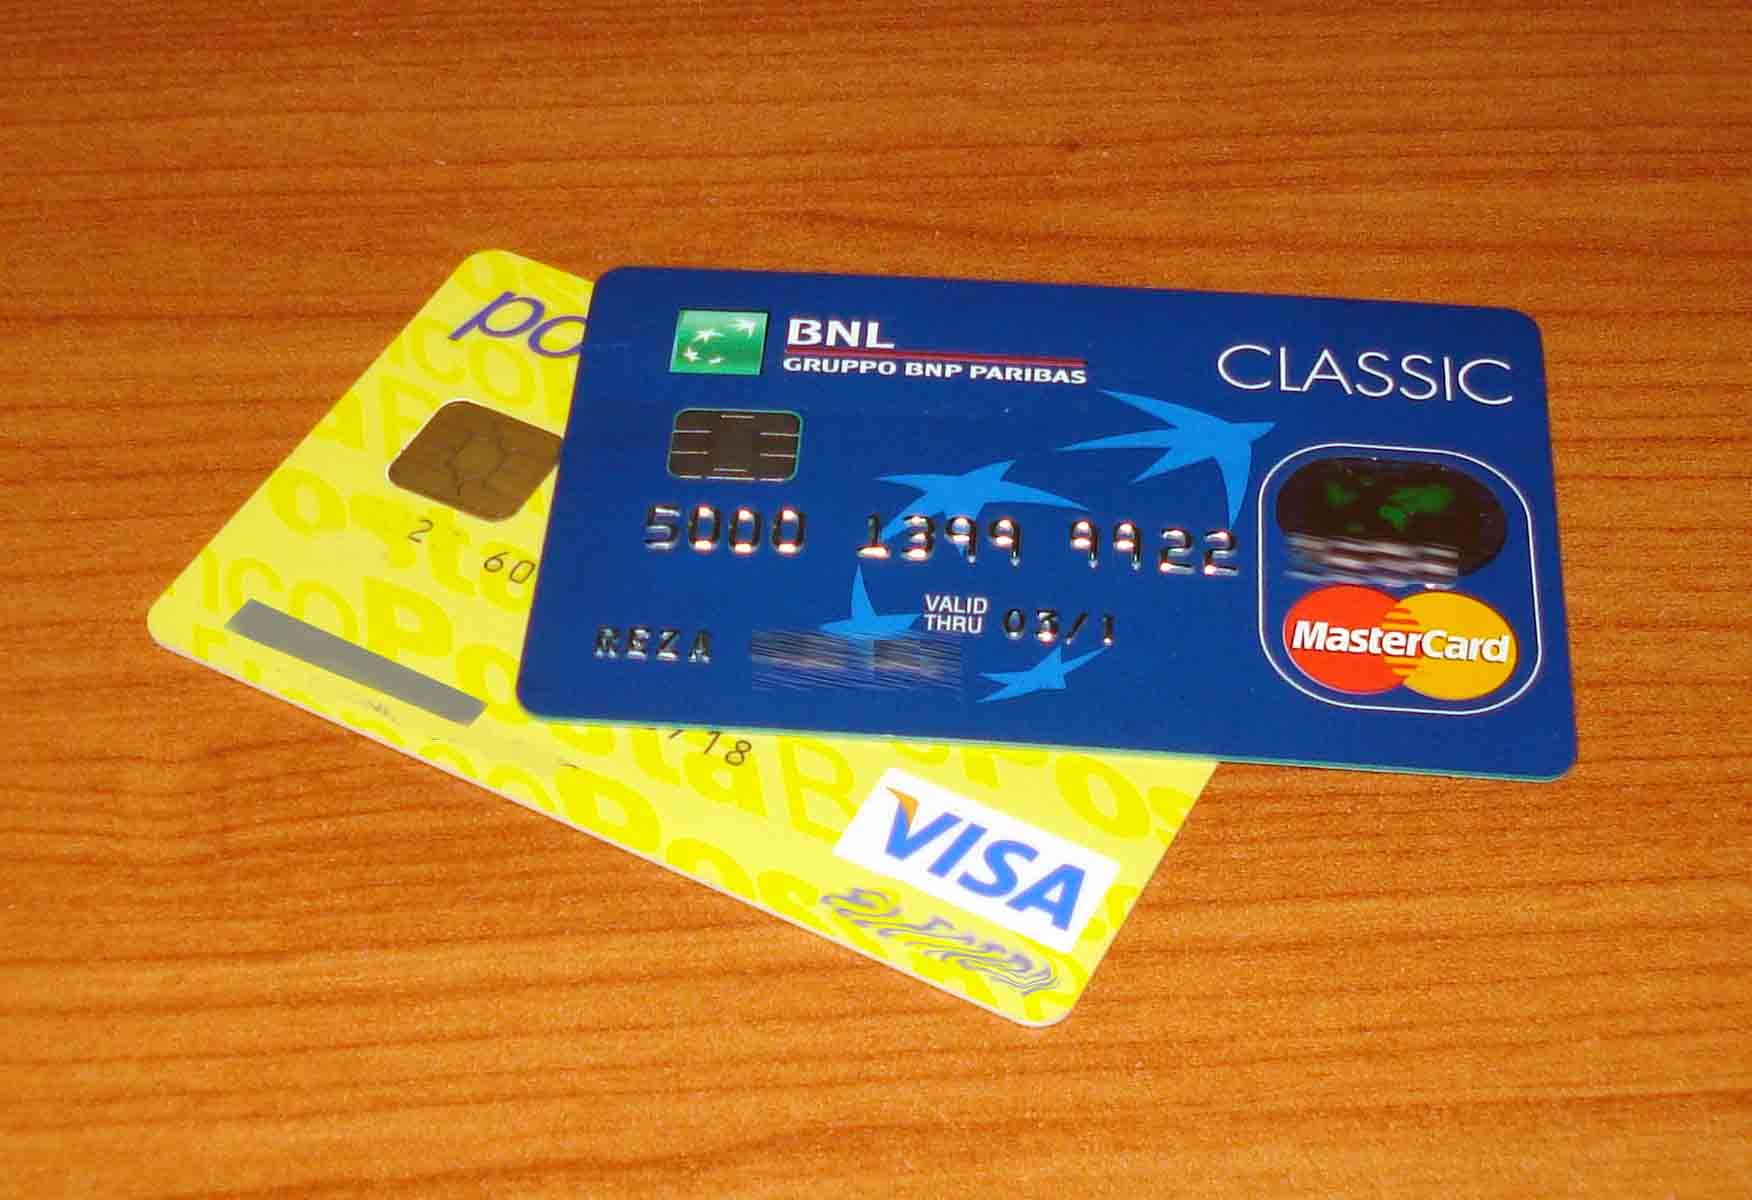 Image Result For Active Credit Cards